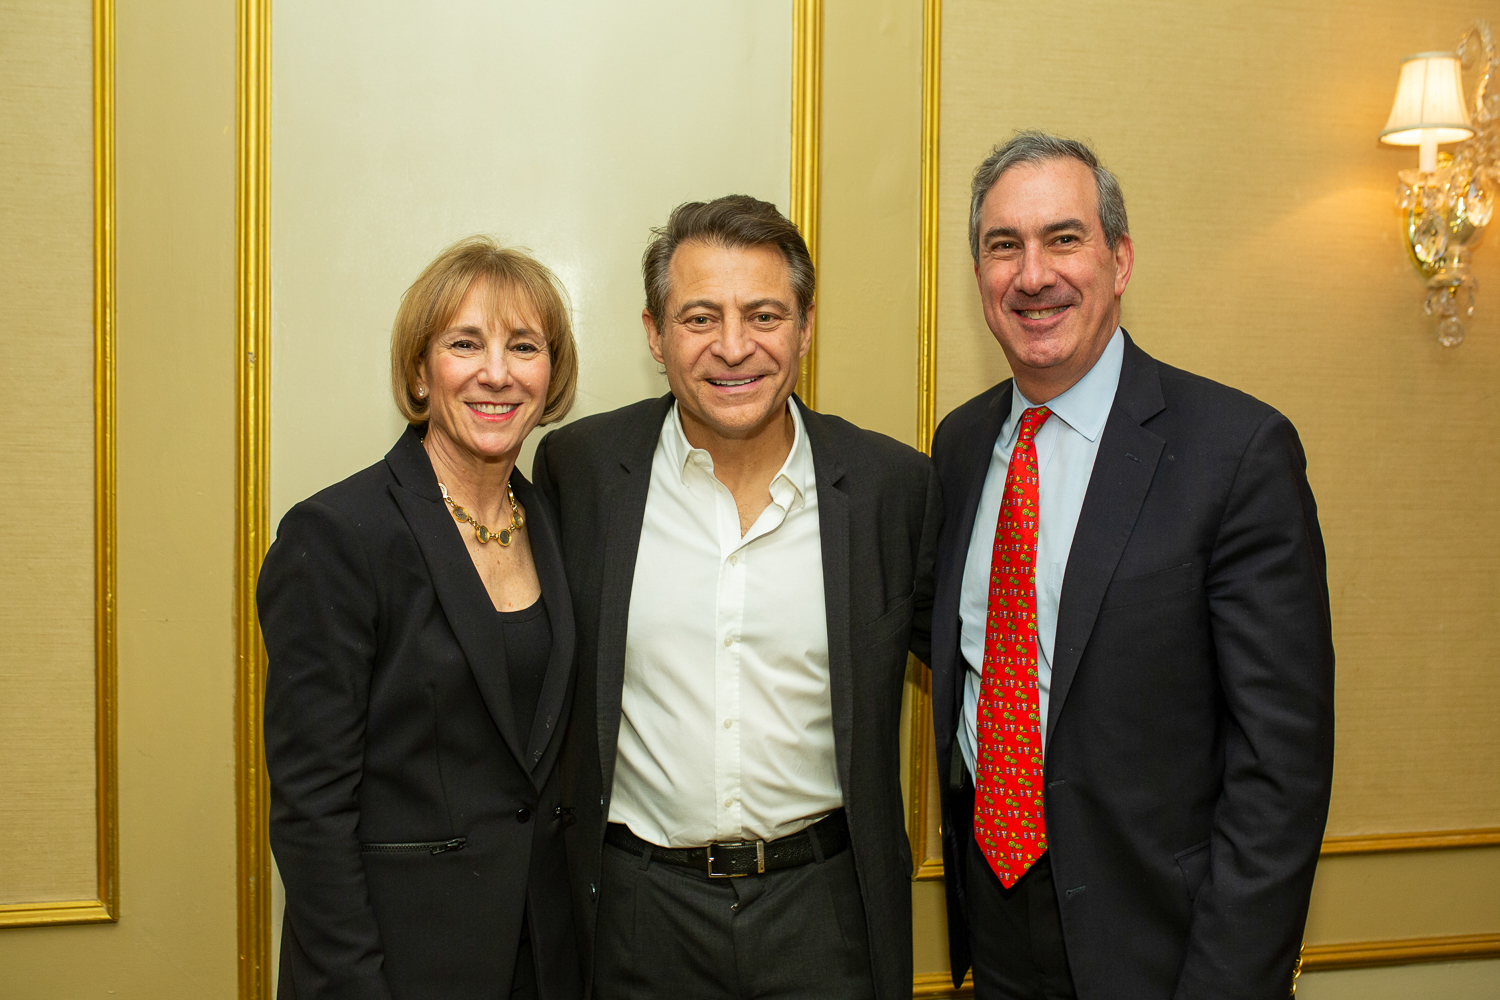 A man and woman stand on either side of Peter Diamandis